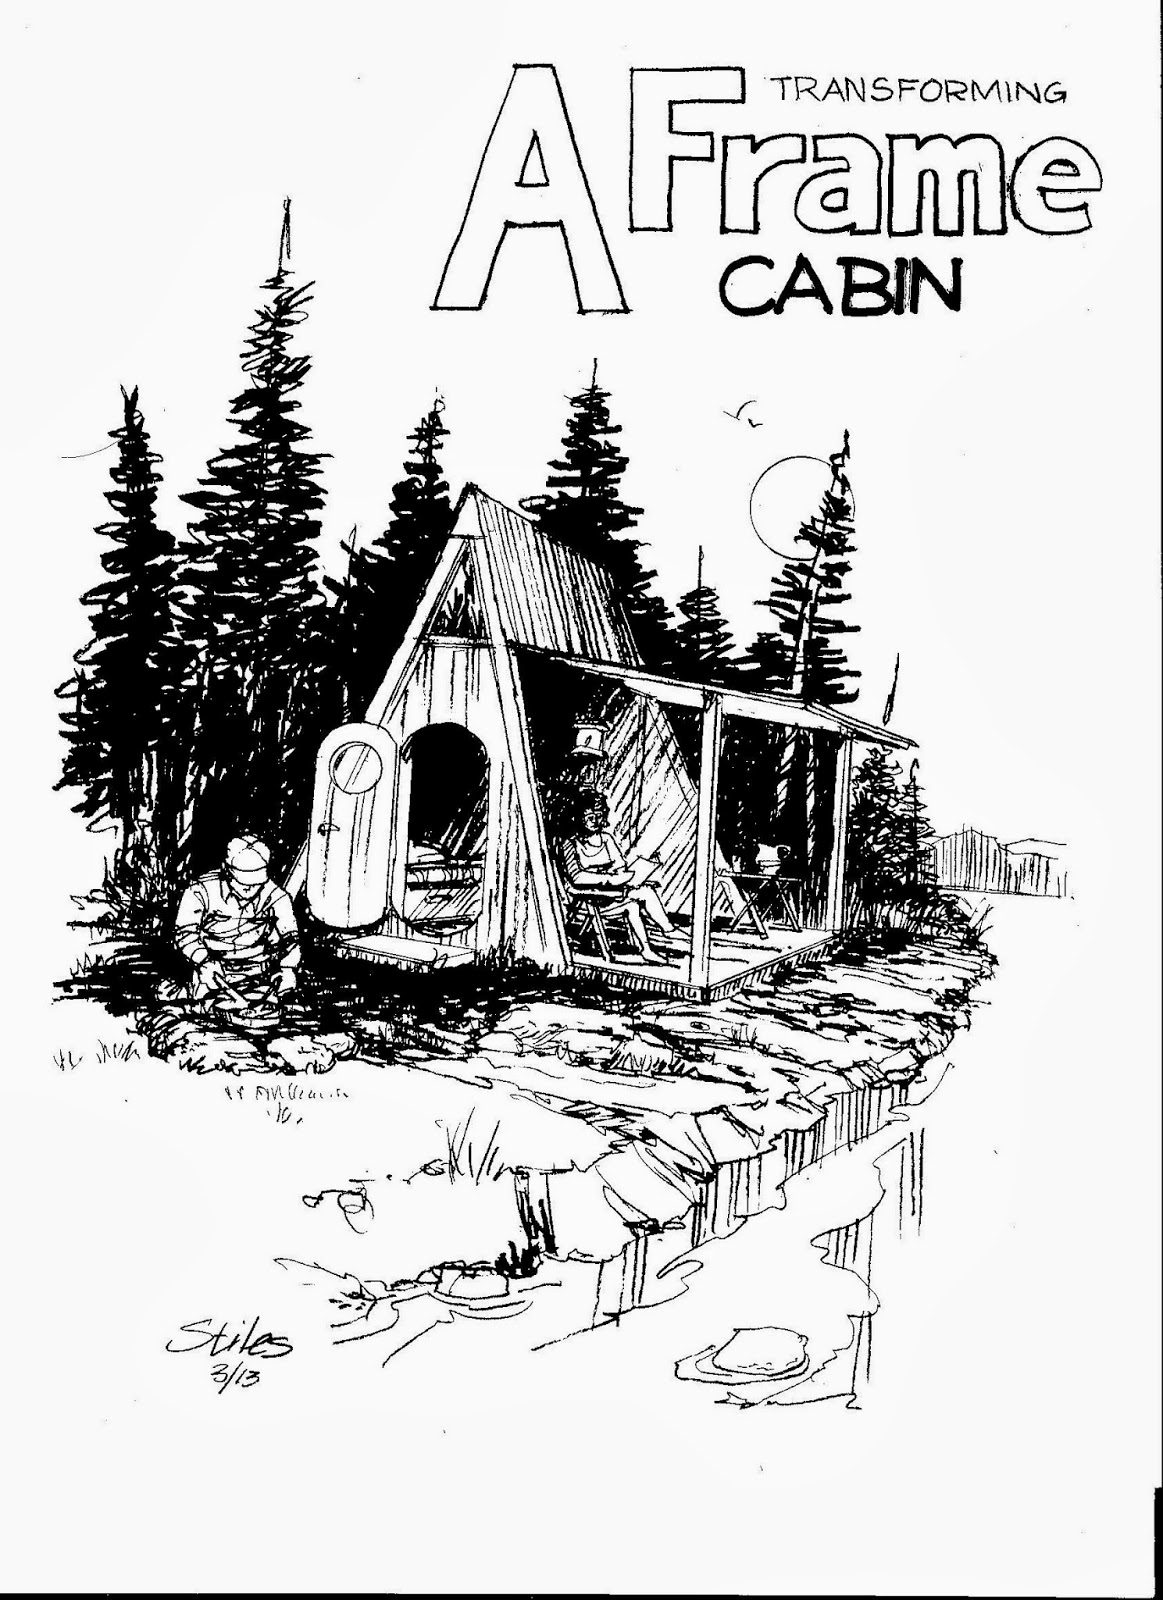 Do It Yourself Cabin Plans Free Small Cabin Plans Small: Relaxshacks.com: Deek, David Stiles, And Joe Everson Team